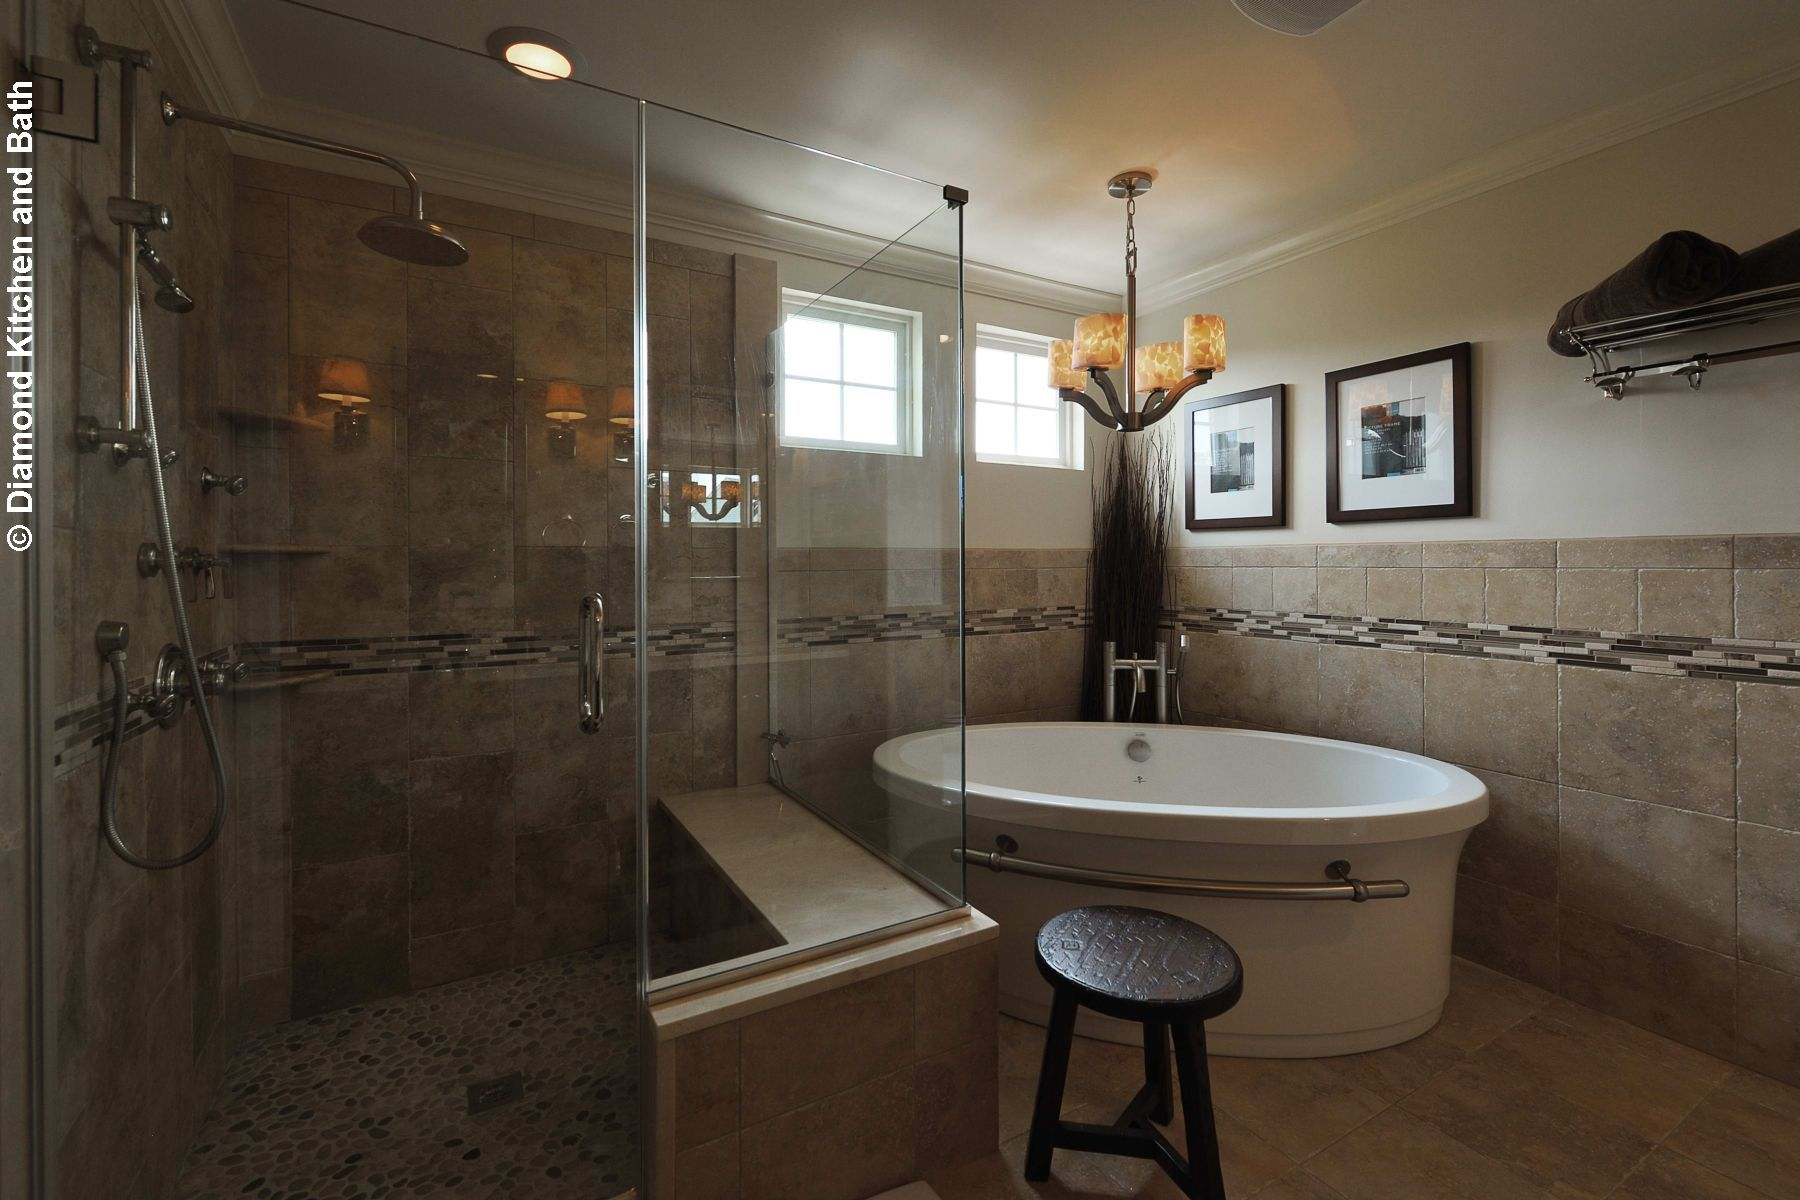 Bathroom Remodeling Virtual Tour in Yardley, PA